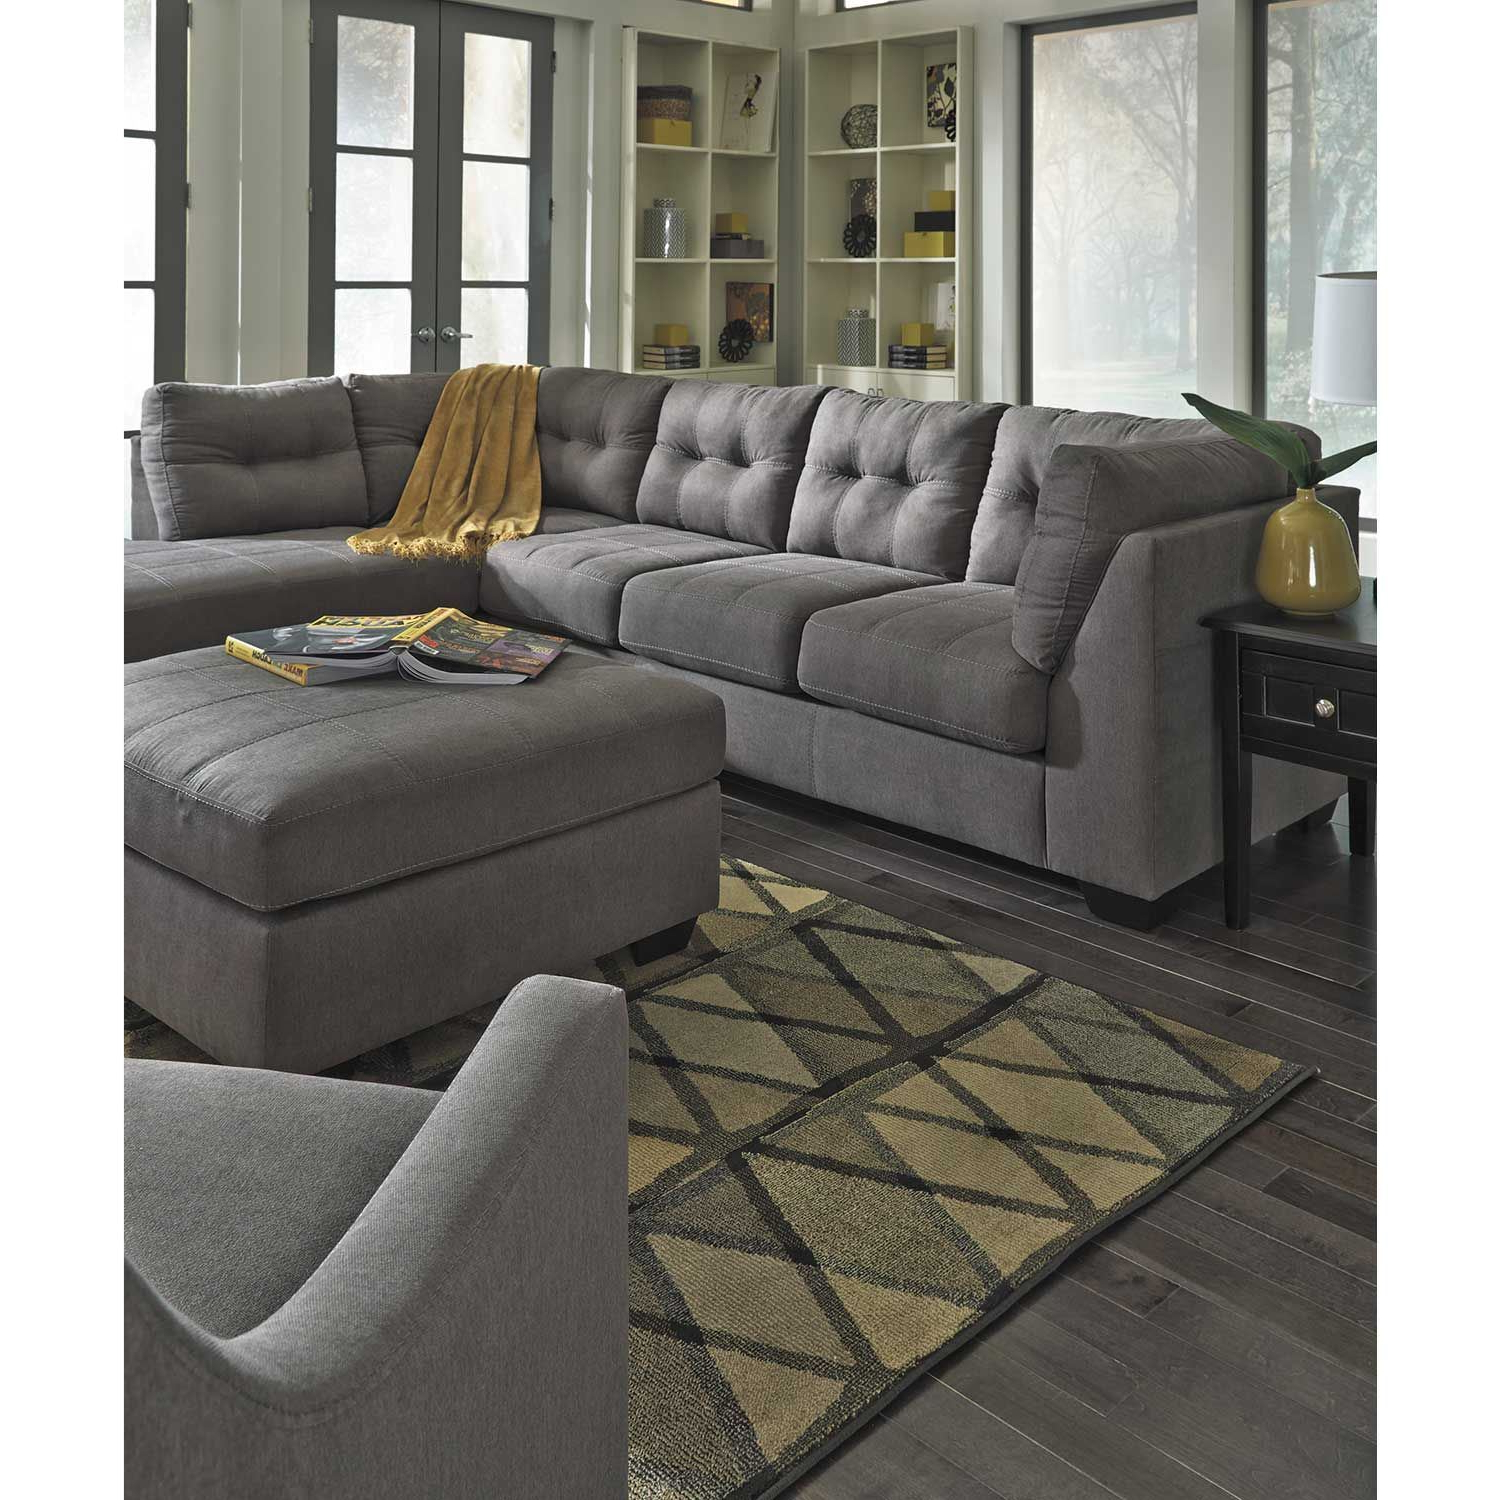 Current Arrowmask 2 Piece Sectionals With Laf Chaise Inside Maier Charcoal 2 Piece Sectional With Laf Chaise (View 12 of 20)